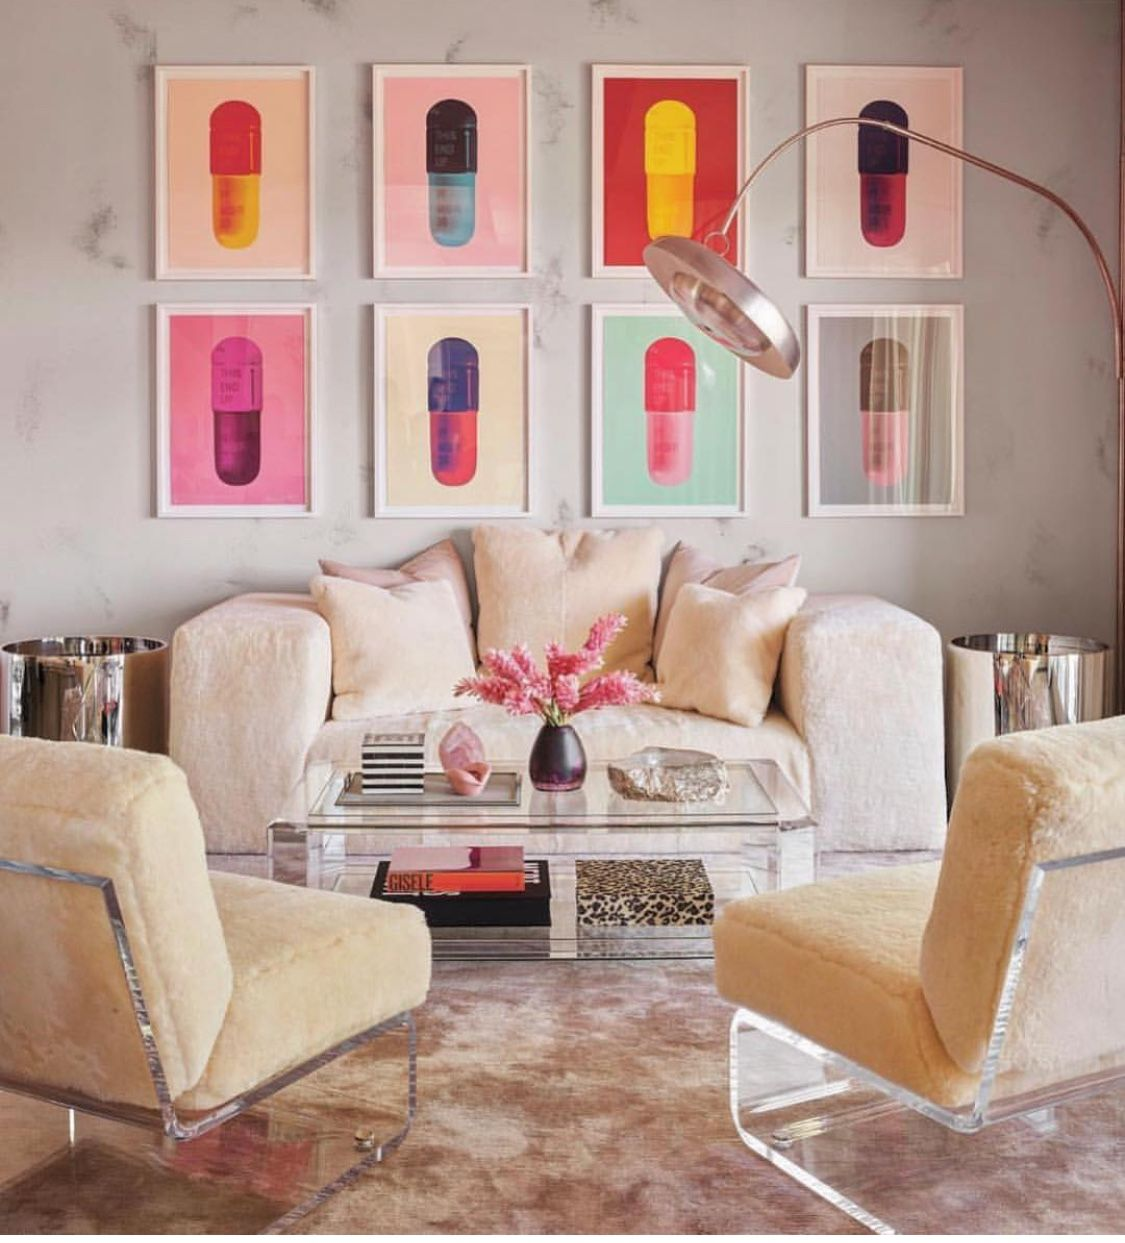 Kylie Jenner S Room And Damien Hirst Pill Art Jenner House Kylie Jenner Kylie Jenner House